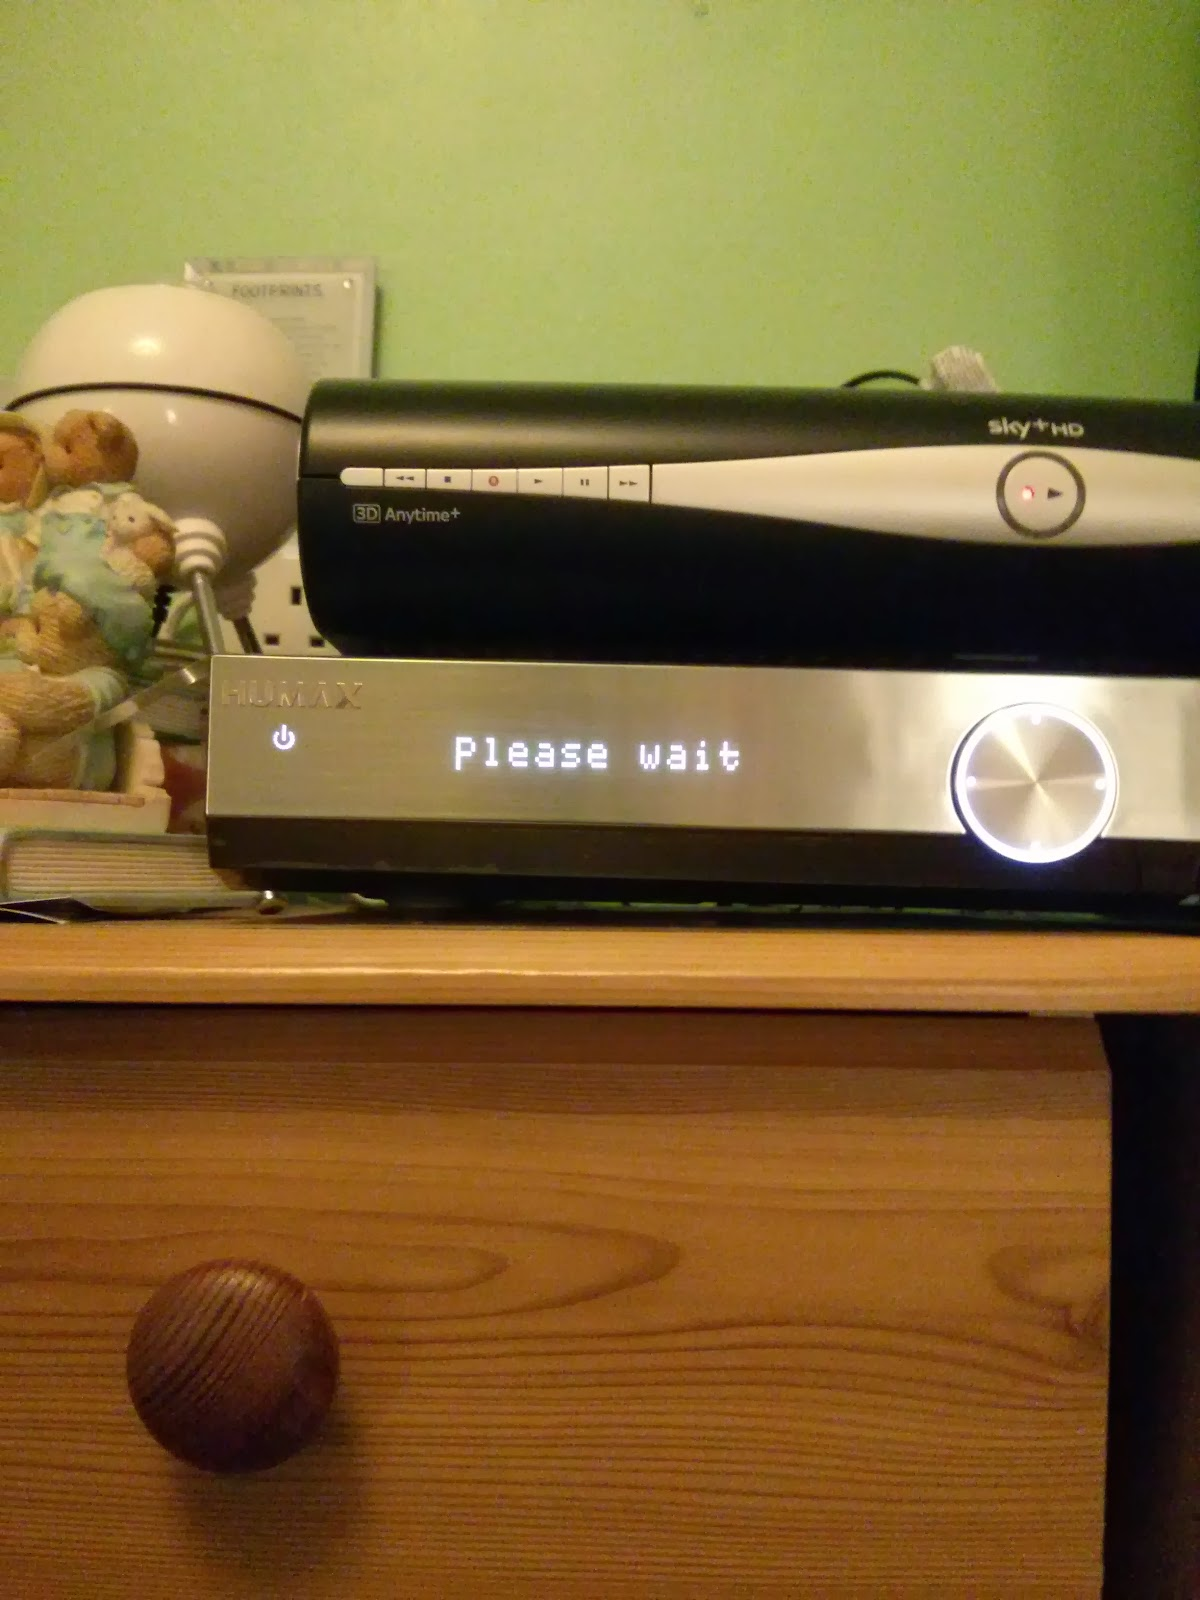 The youview box is so polite!